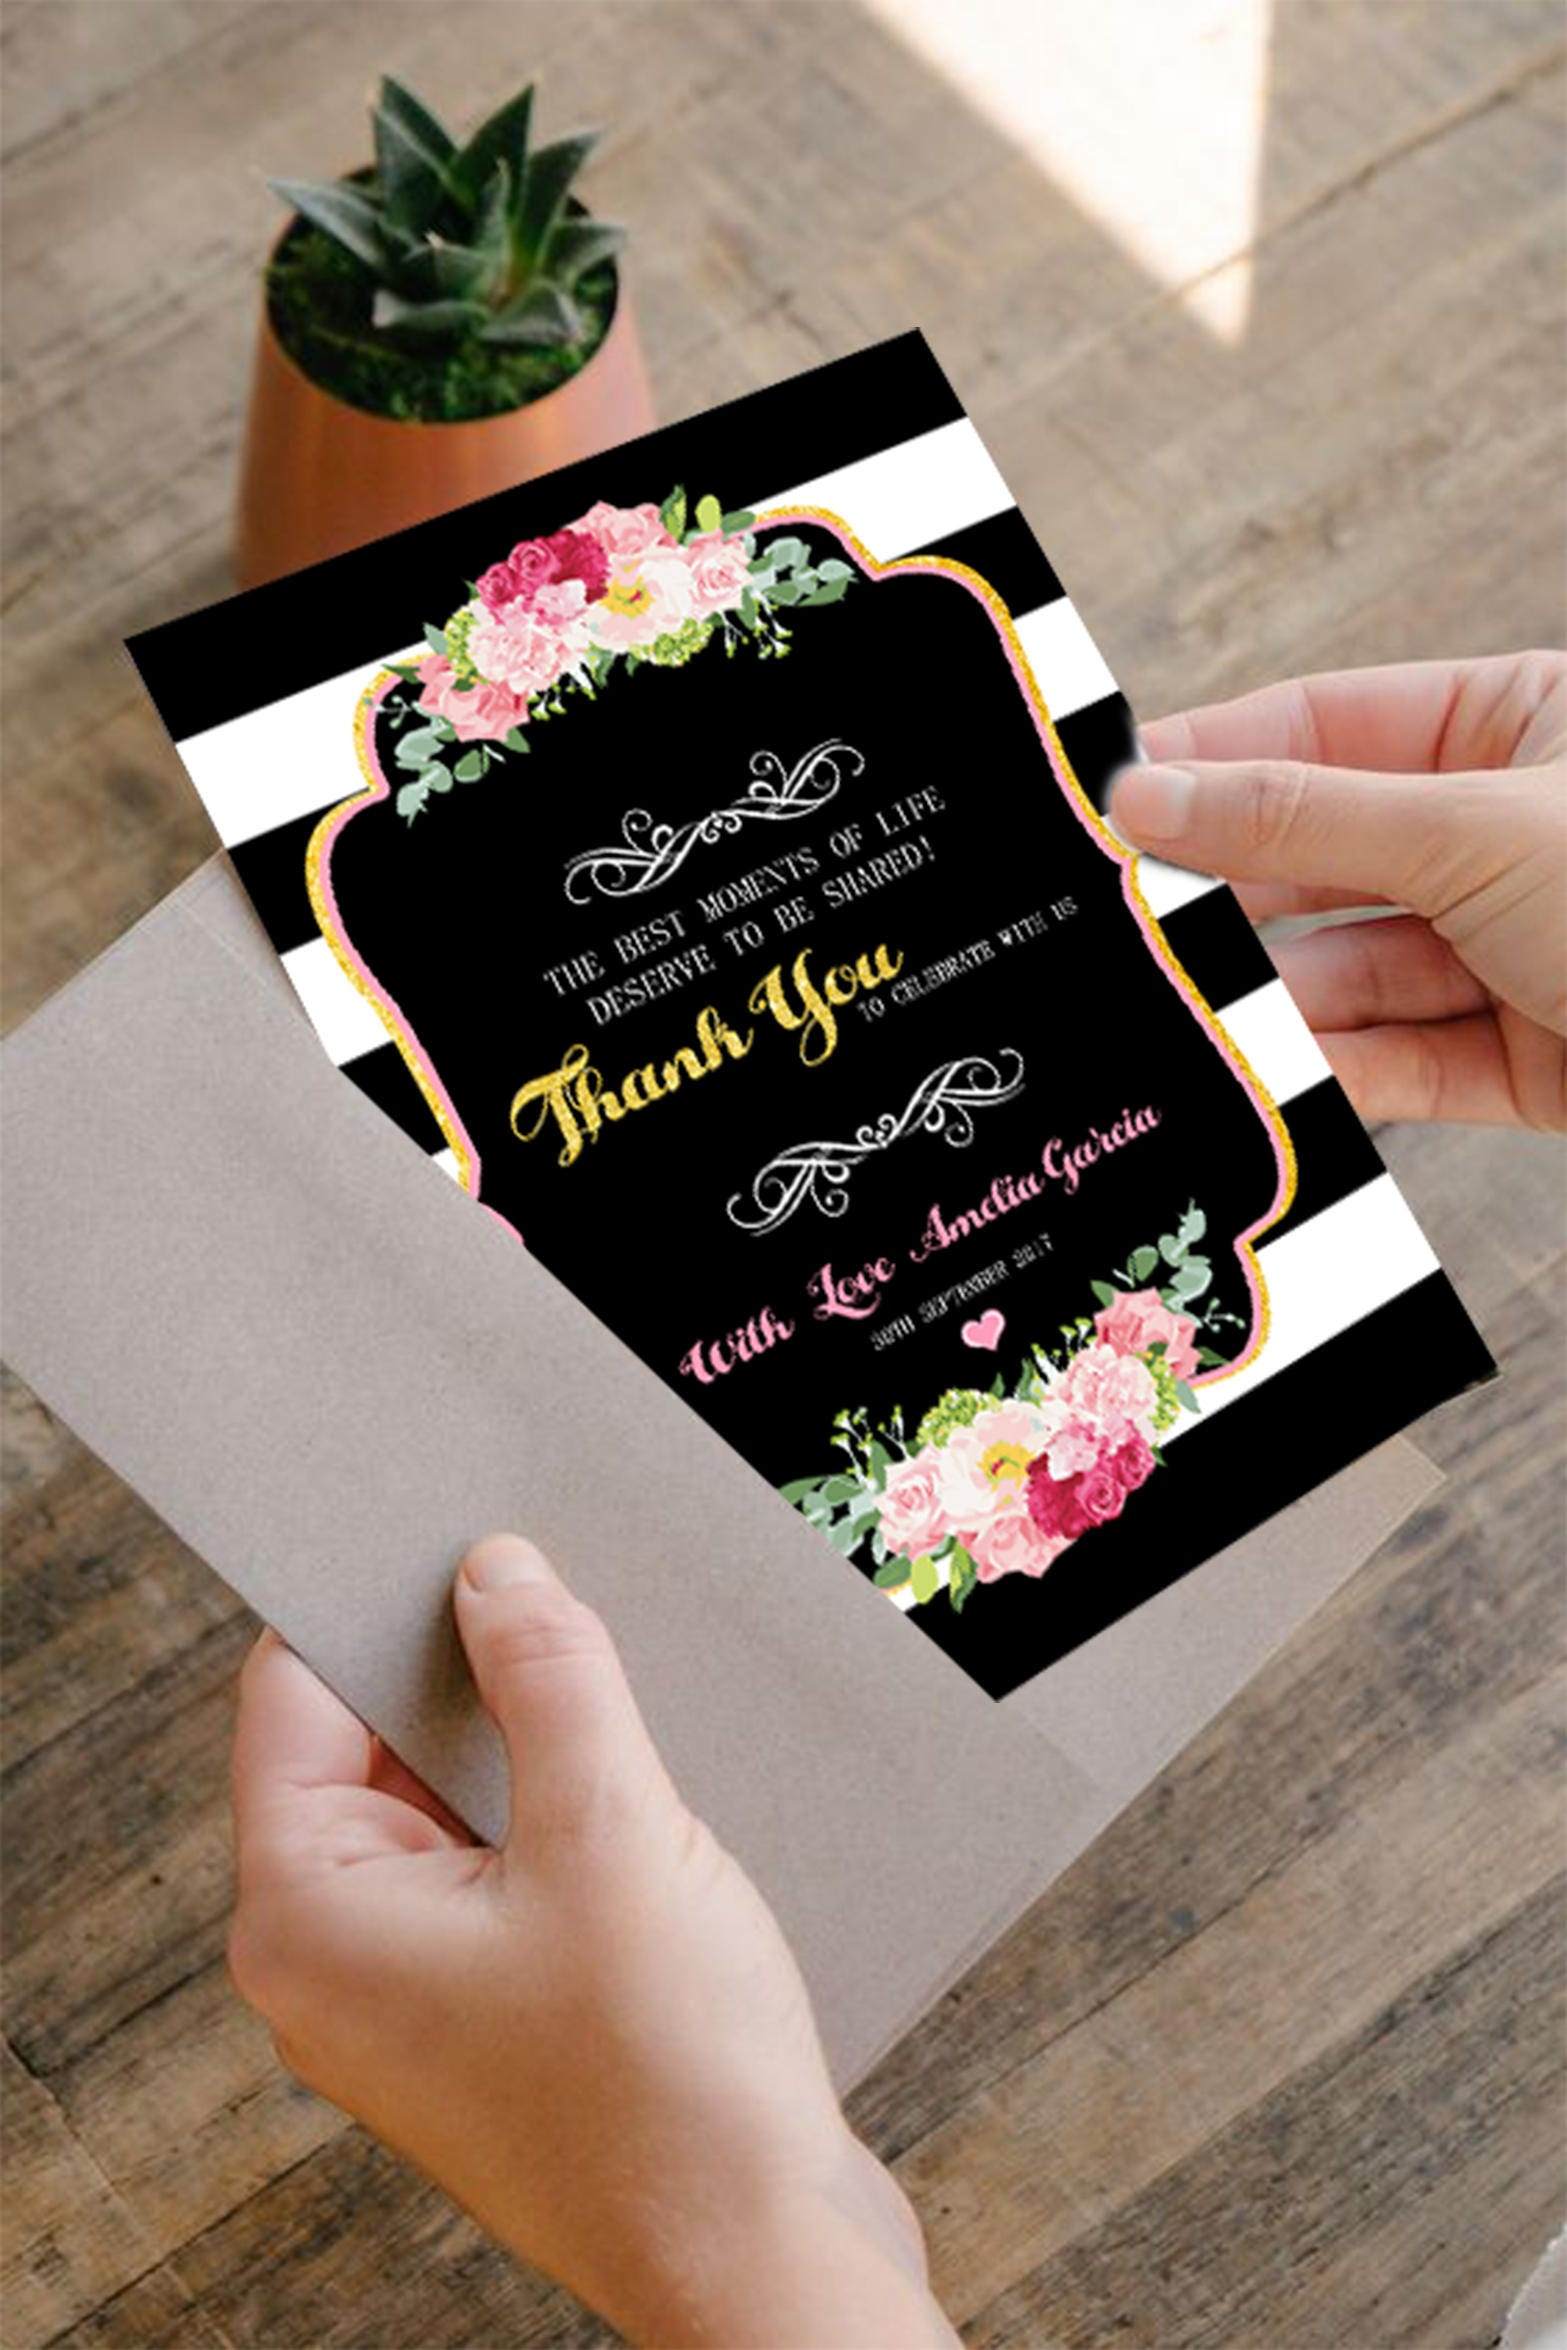 Thank You Card Kate Spade Baby Shower, Black And White Striped Invitation,  Black And